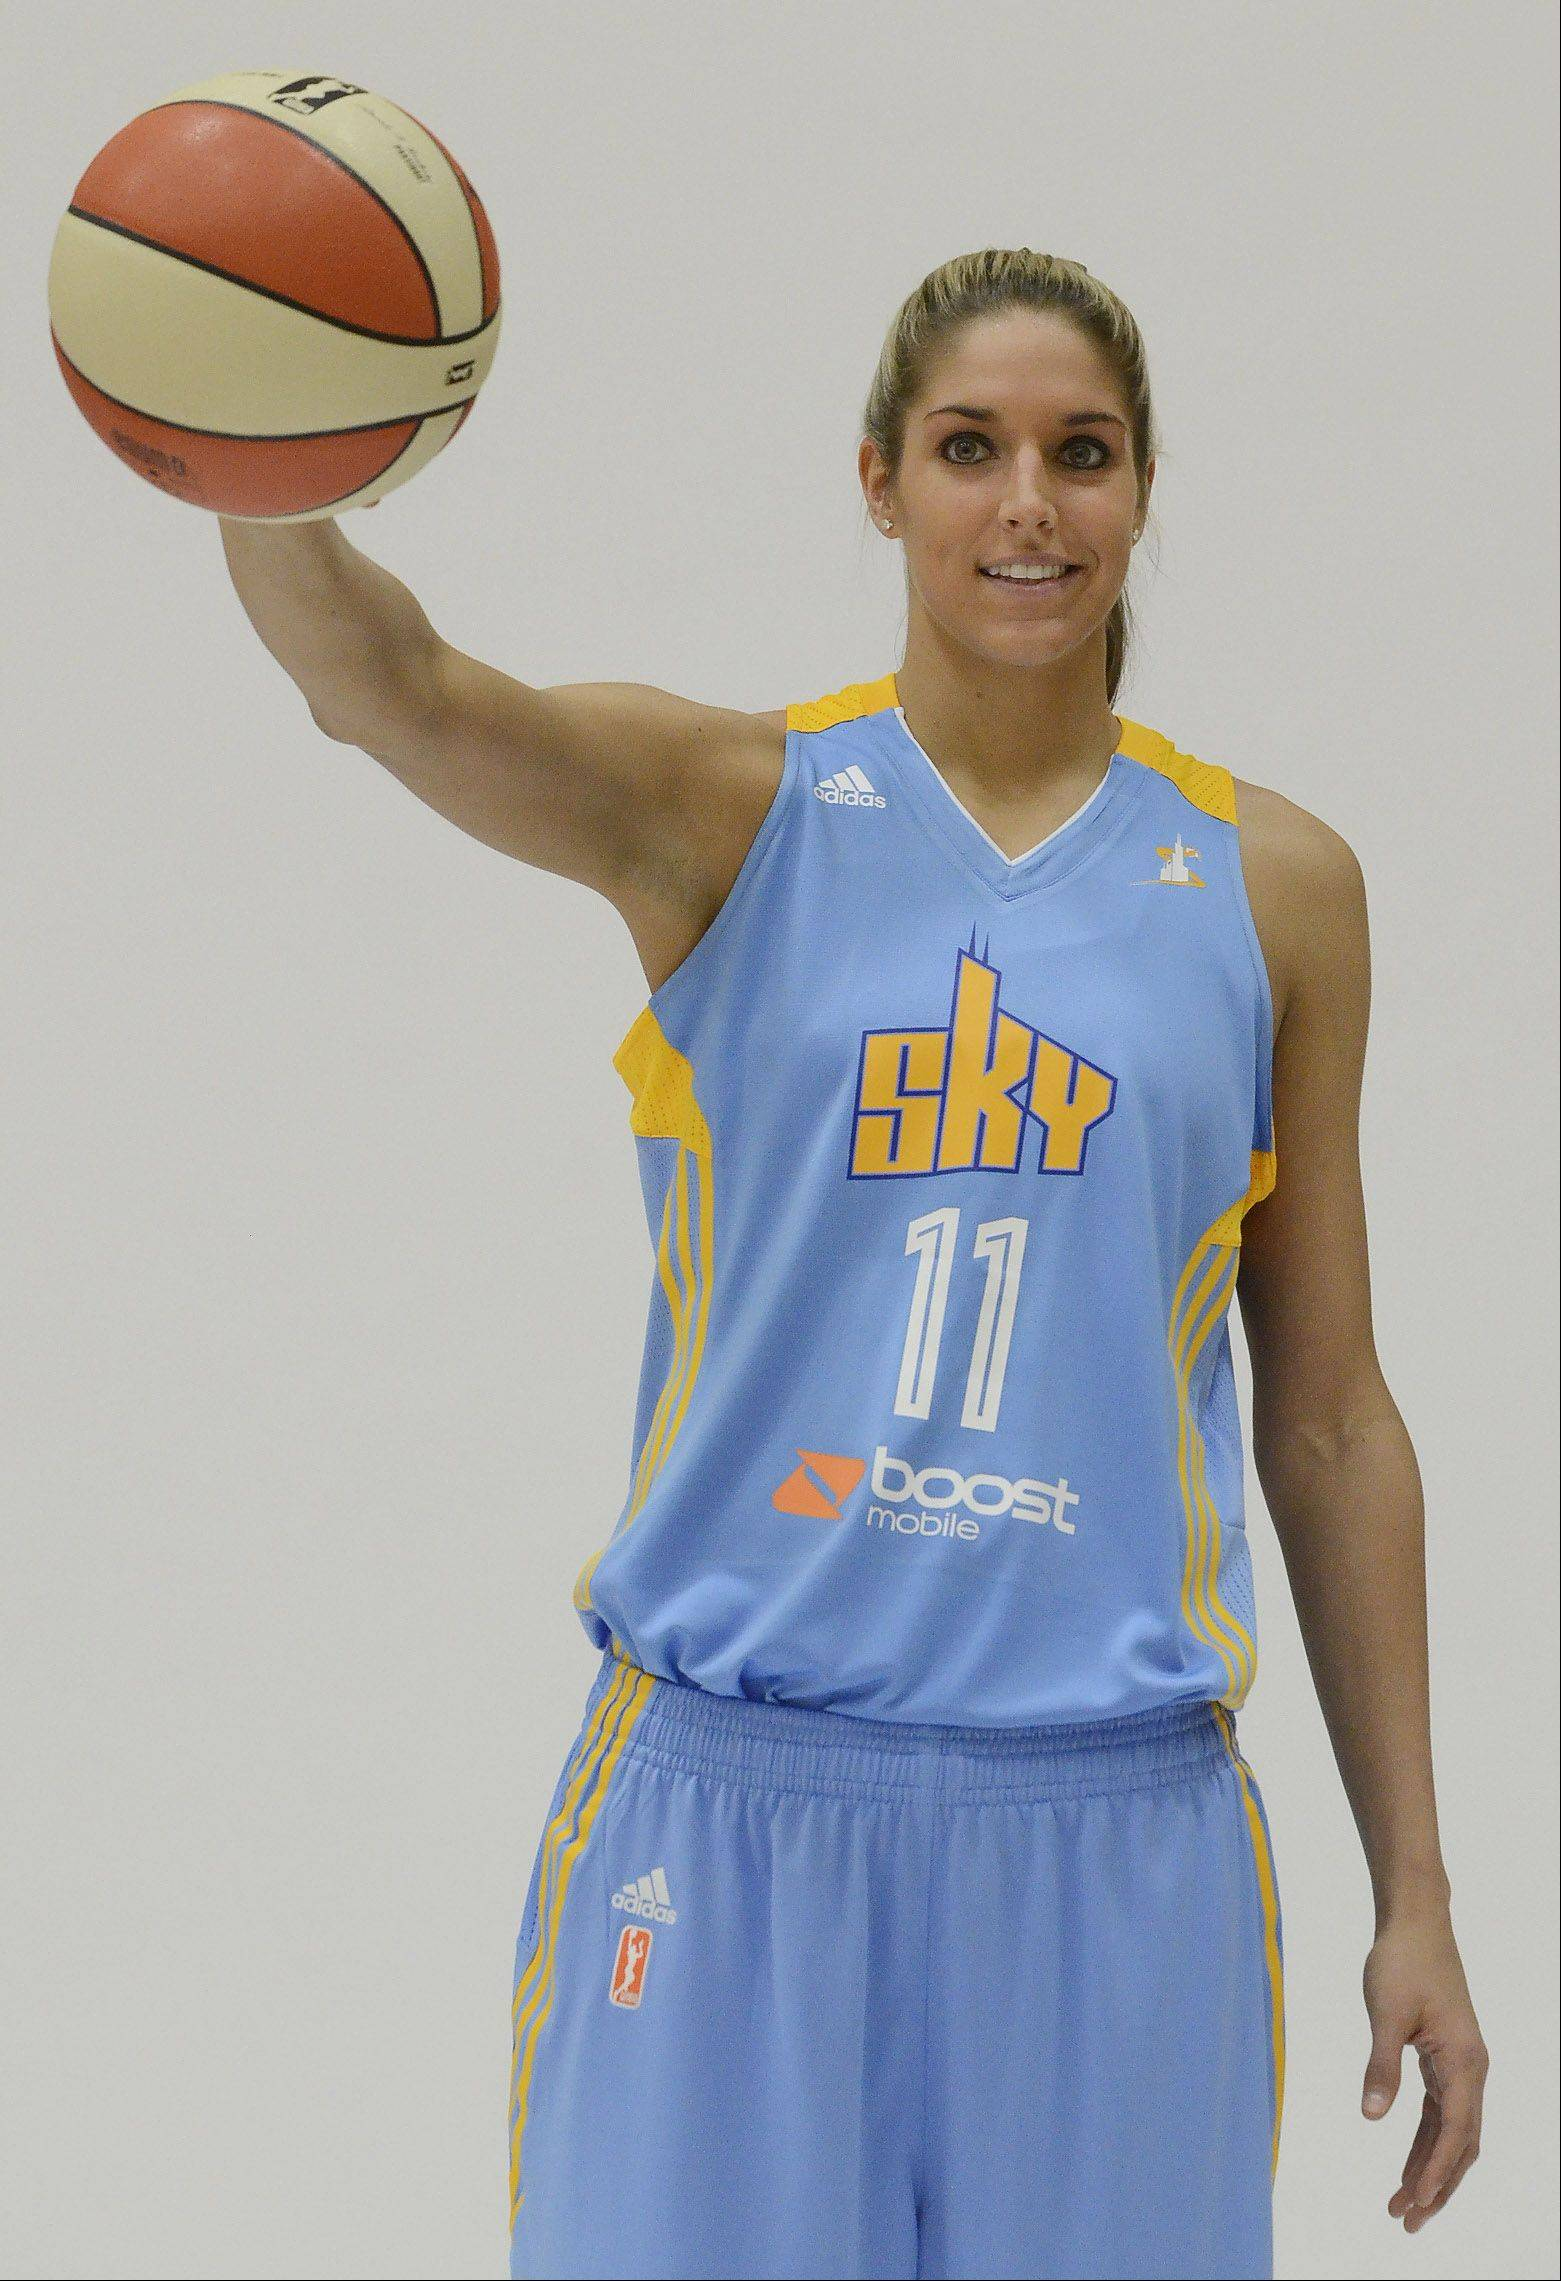 The Sky's top draft pick, 6-foot-5 swing player Elena Delle Donne, handles pressure as easily as she handles a basketball. The Sky's first exhibition game is May 16.